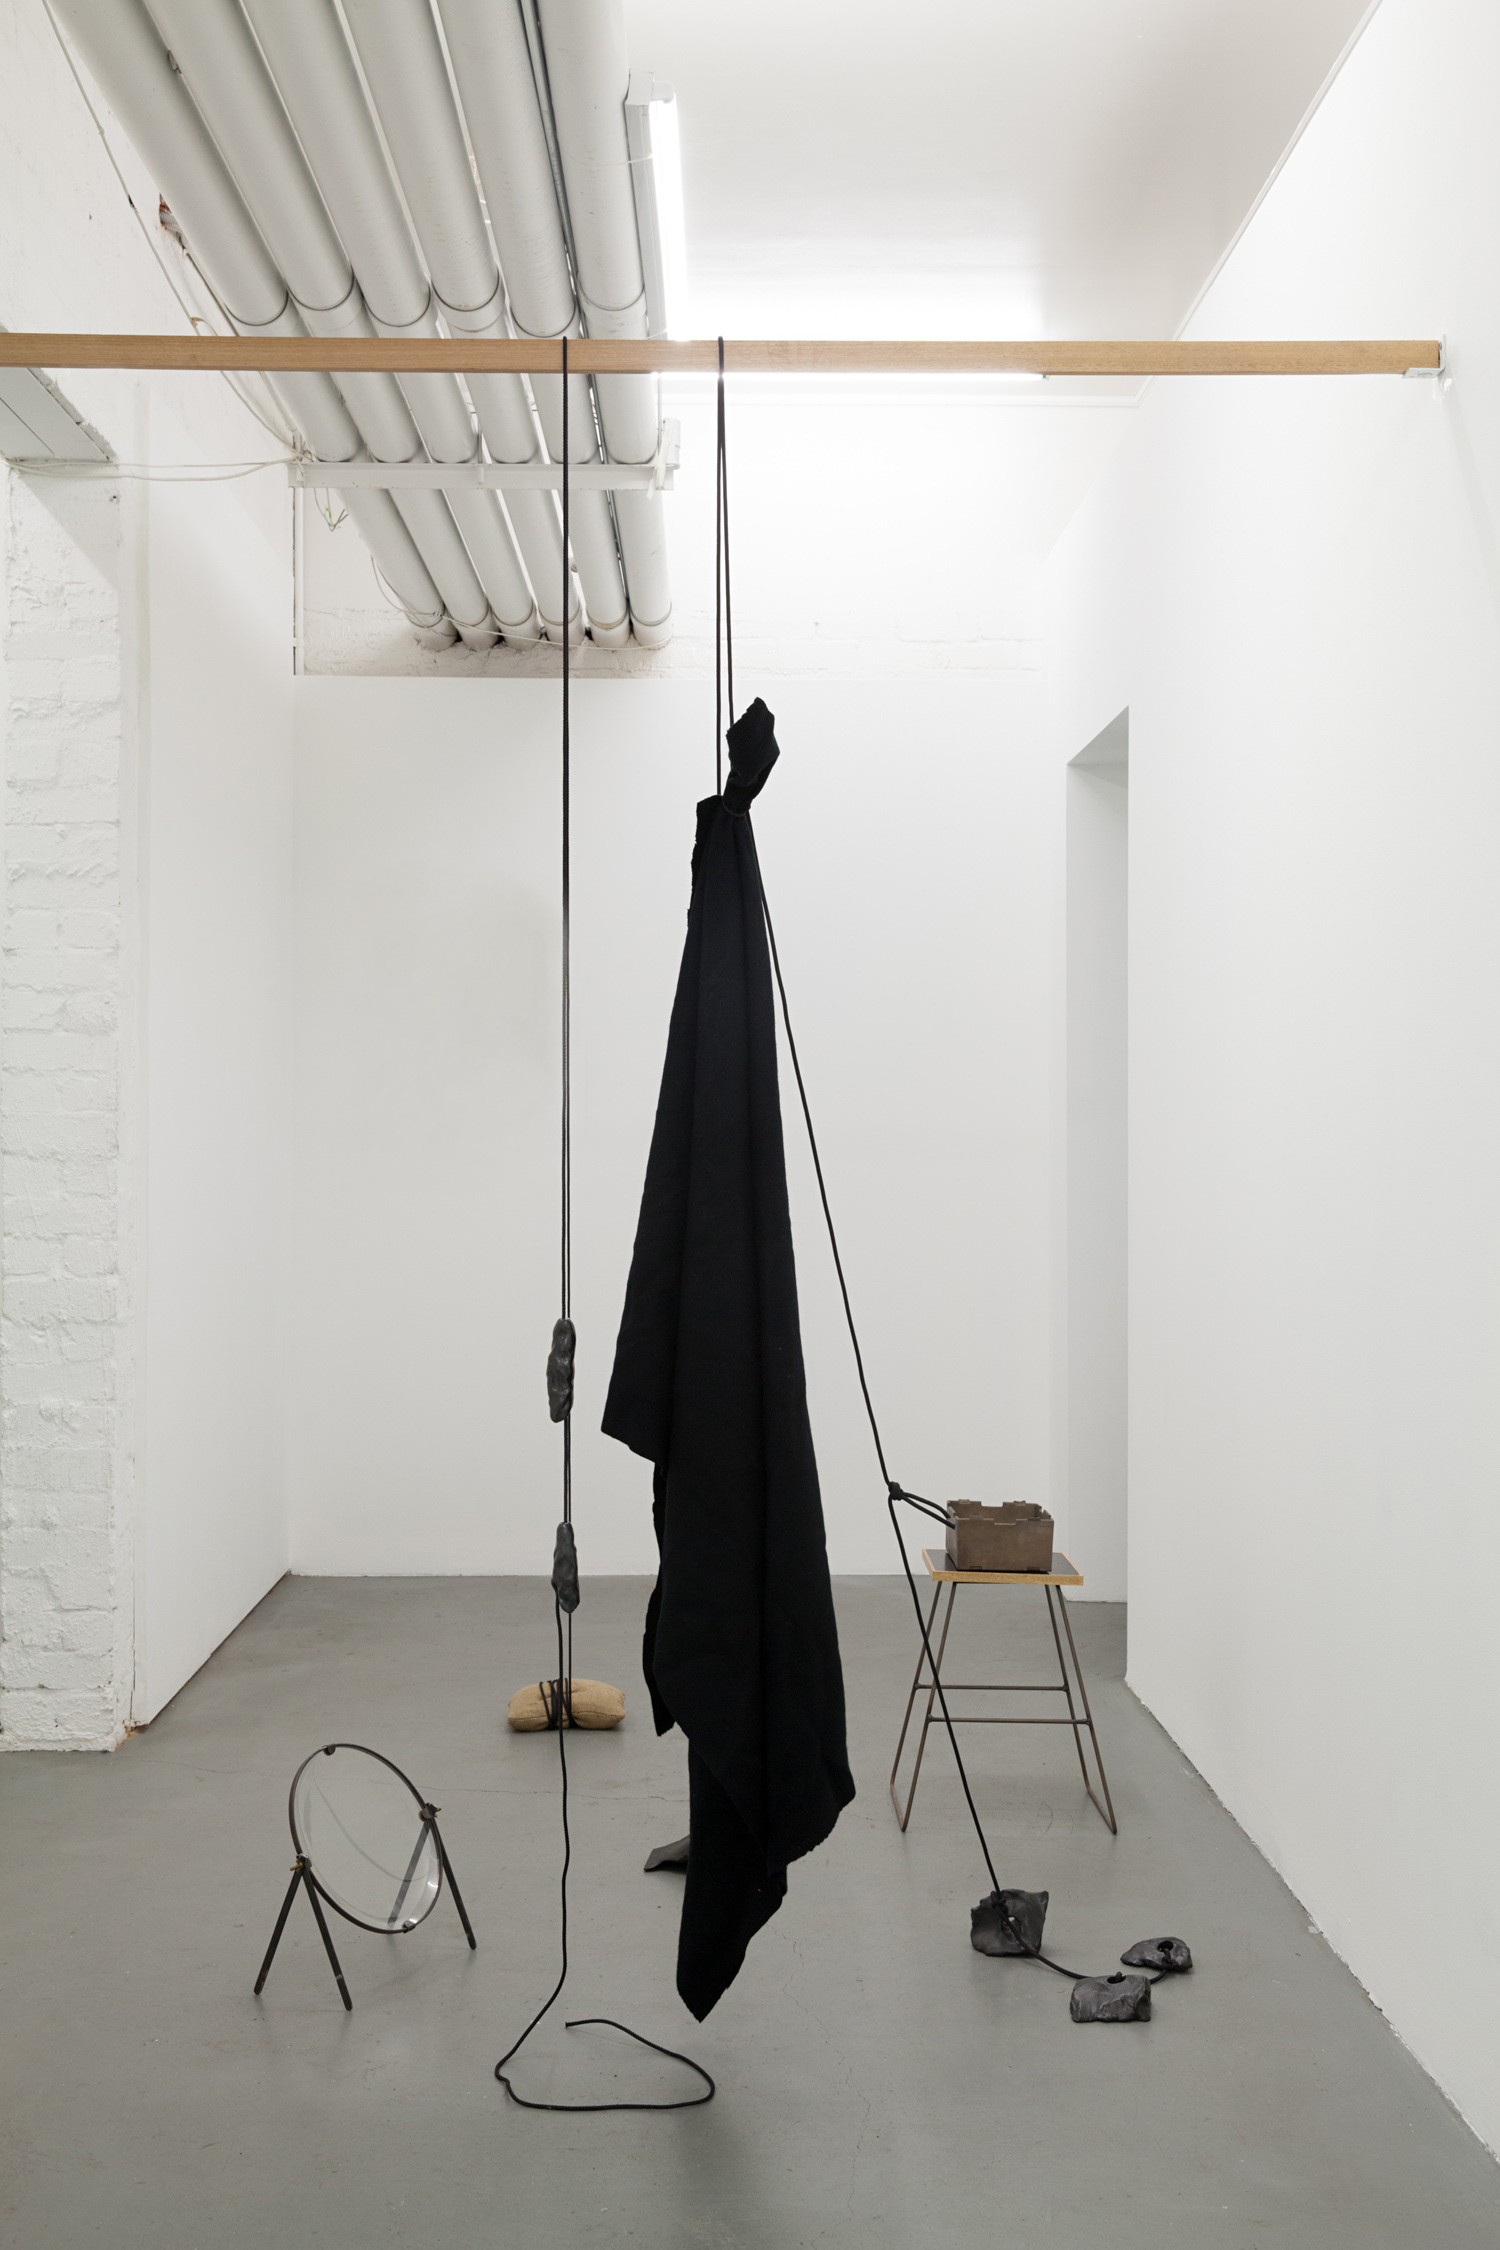 Katie Lee,  Tool Things,  2017, bronze, ceramic, glass, hessian, rope, steel, timber and wool, dimensions variable.